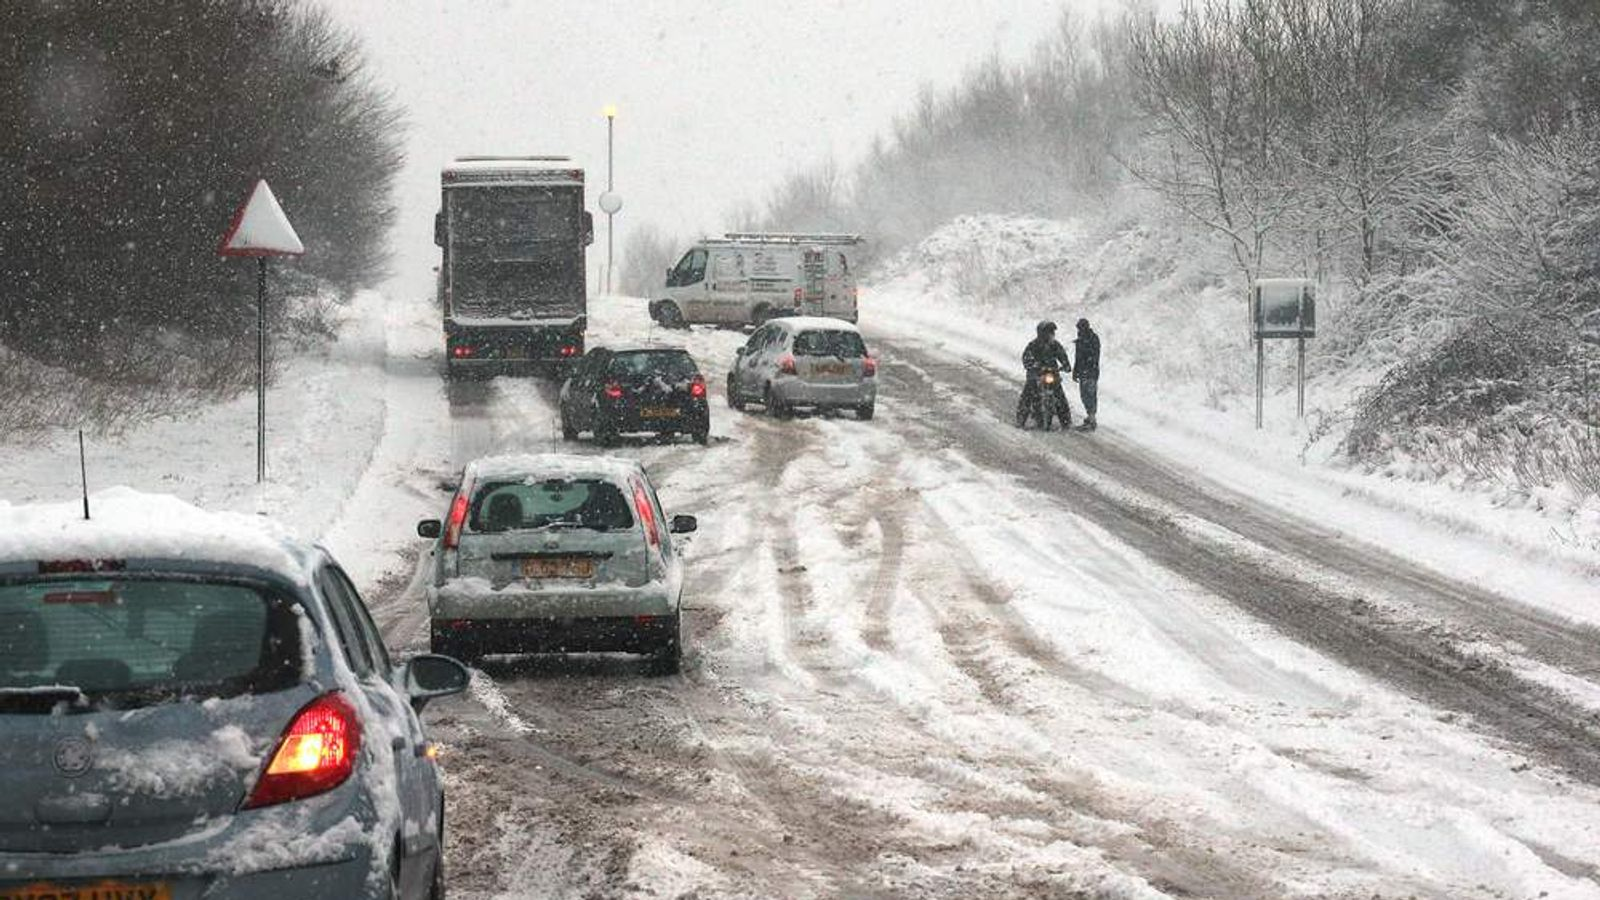 Vehicles struggle in the snow